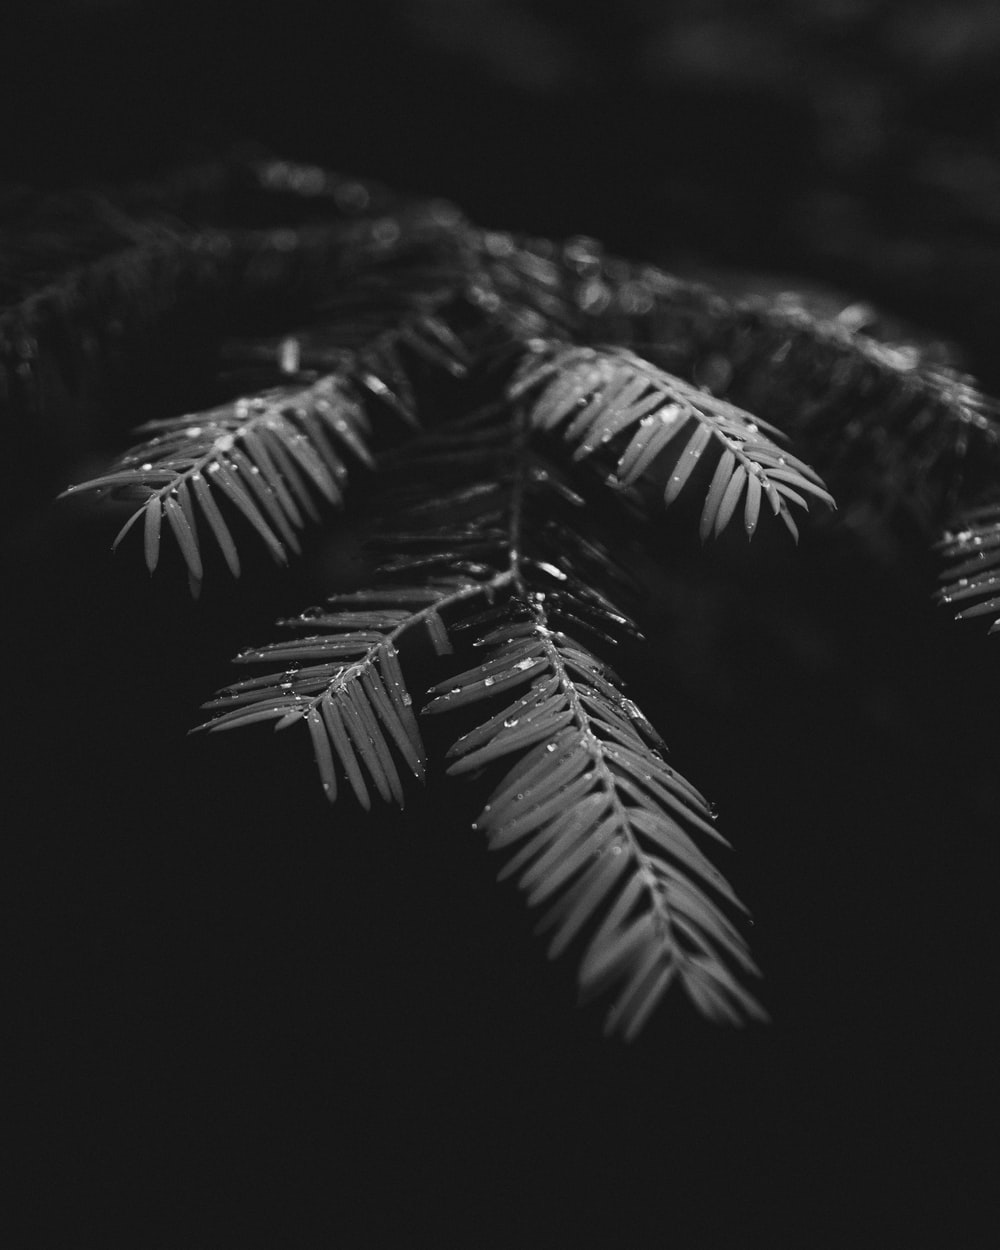 grayscale photography of water drops on plant